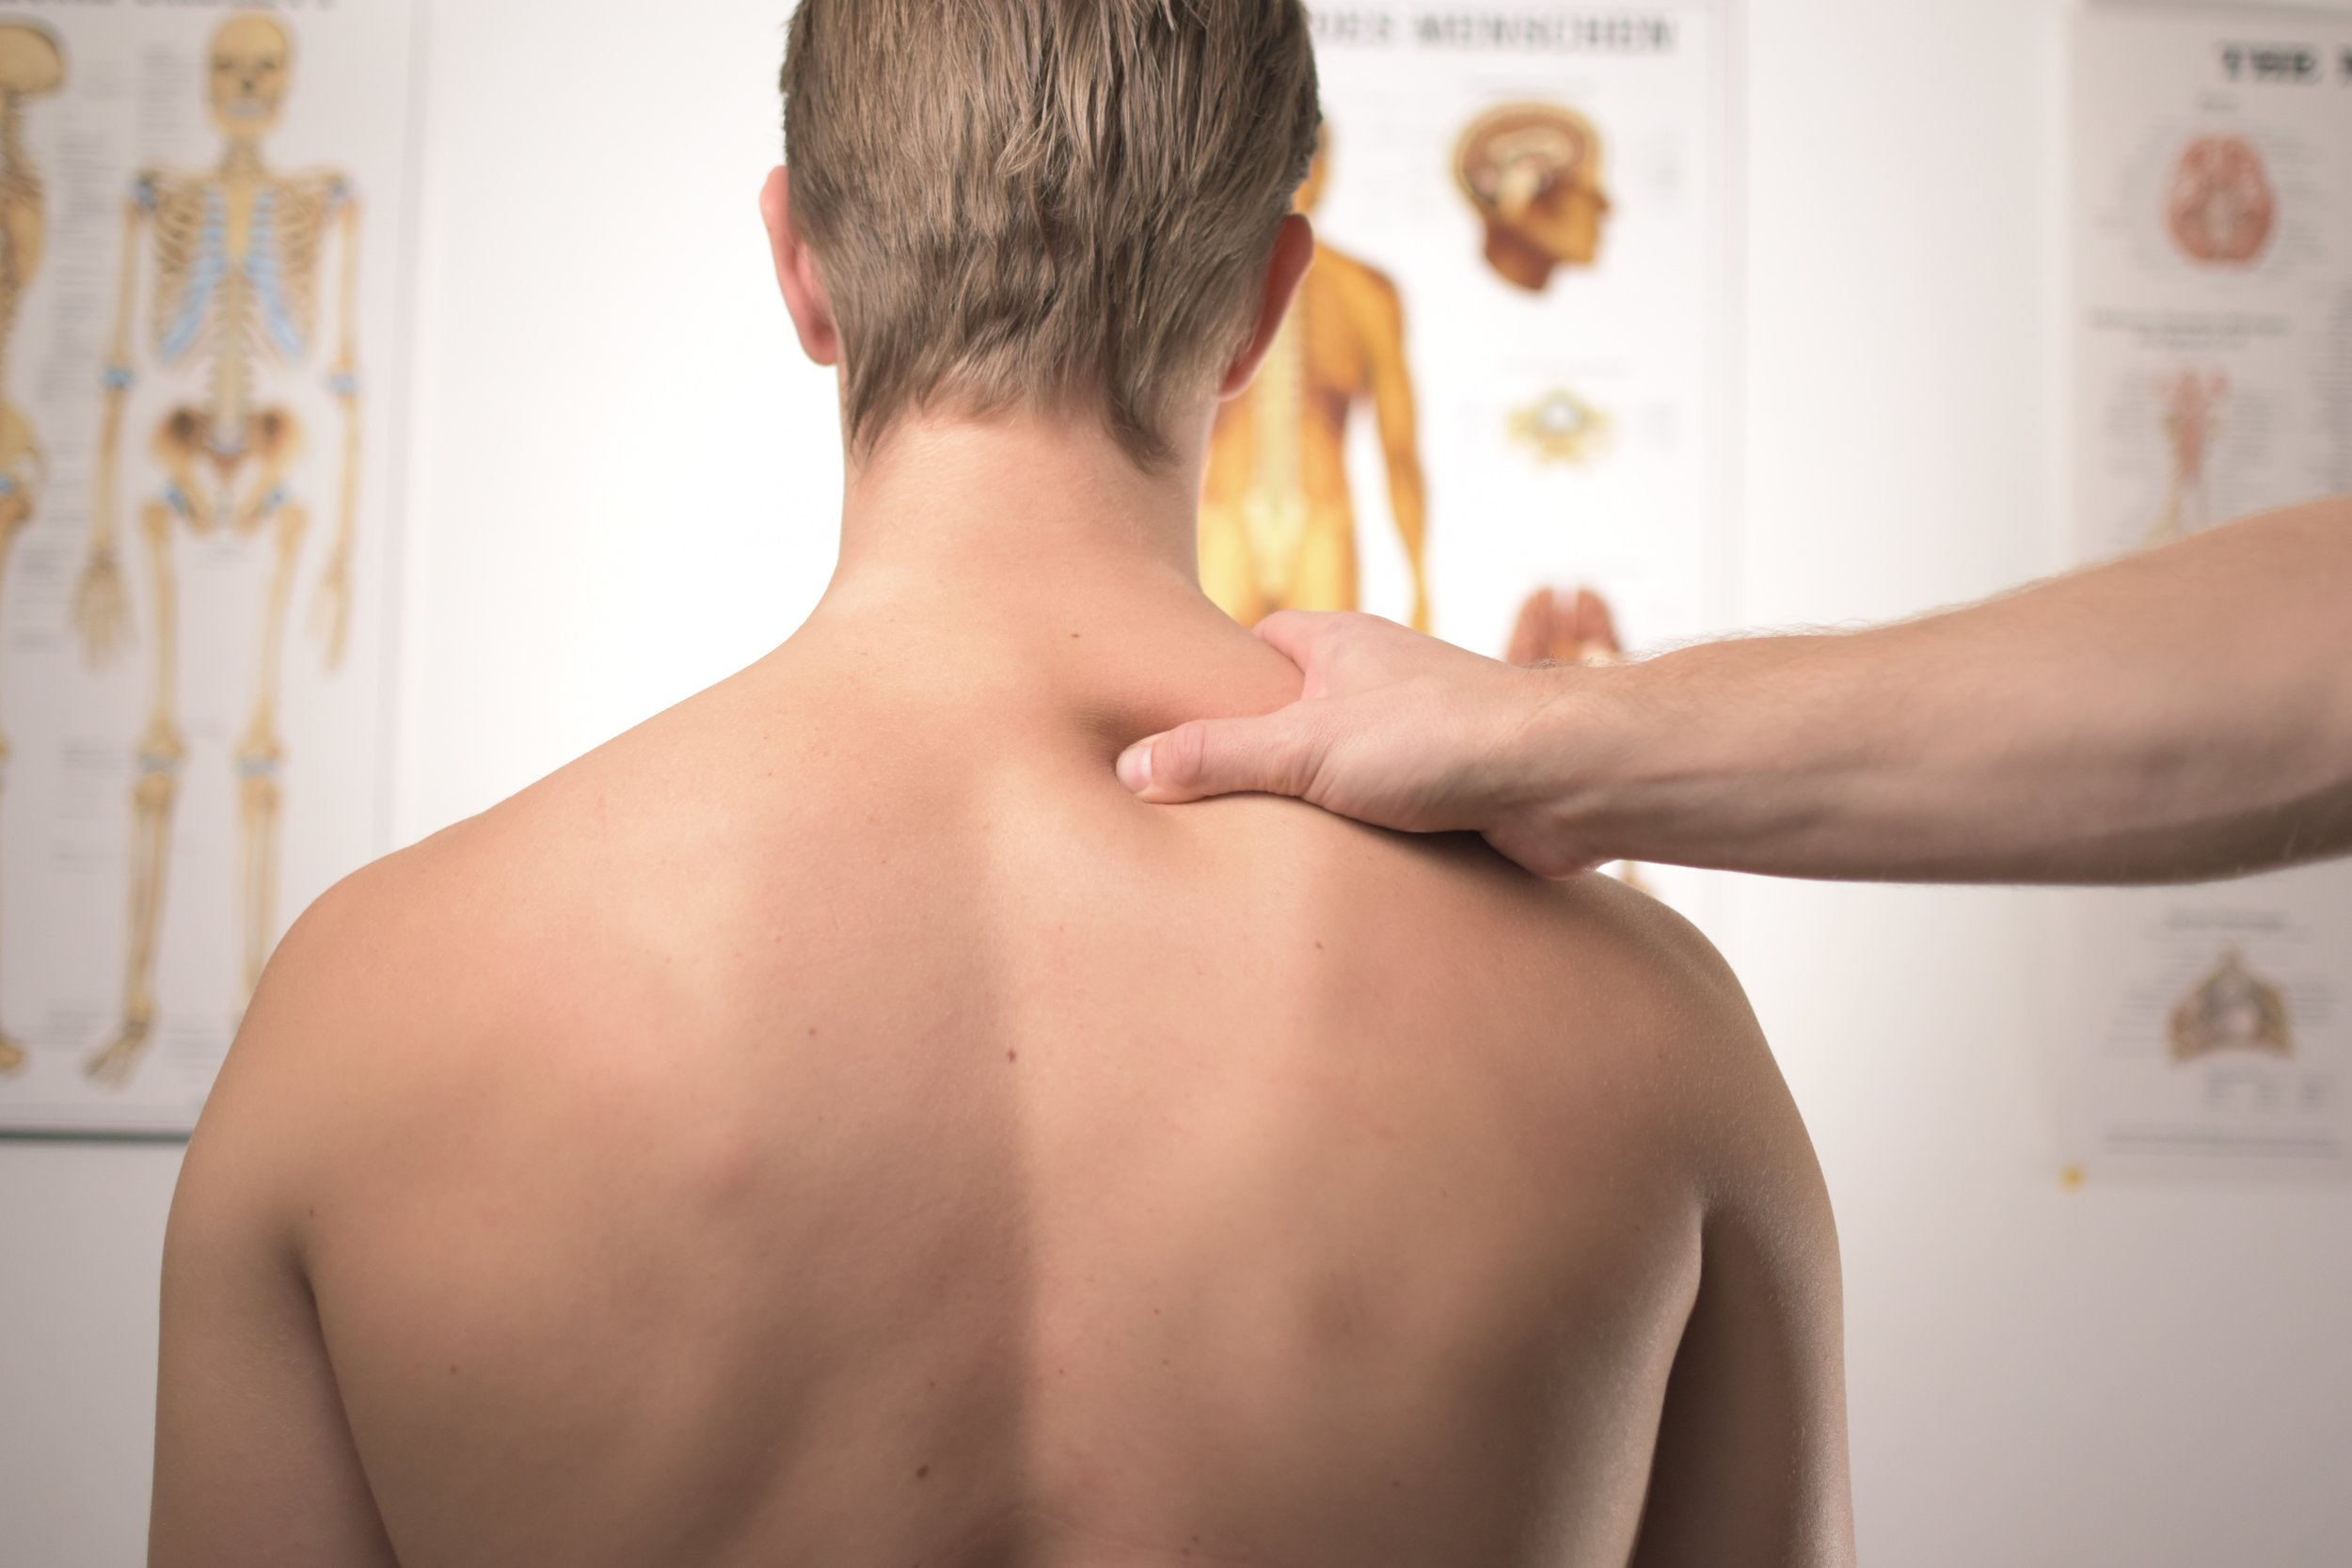 - A trigger point is a tight area of muscle tissue that can cause referred pain in other parts of the body. Trigger point therapy can aid in releasing the contracted areas in the muscle.